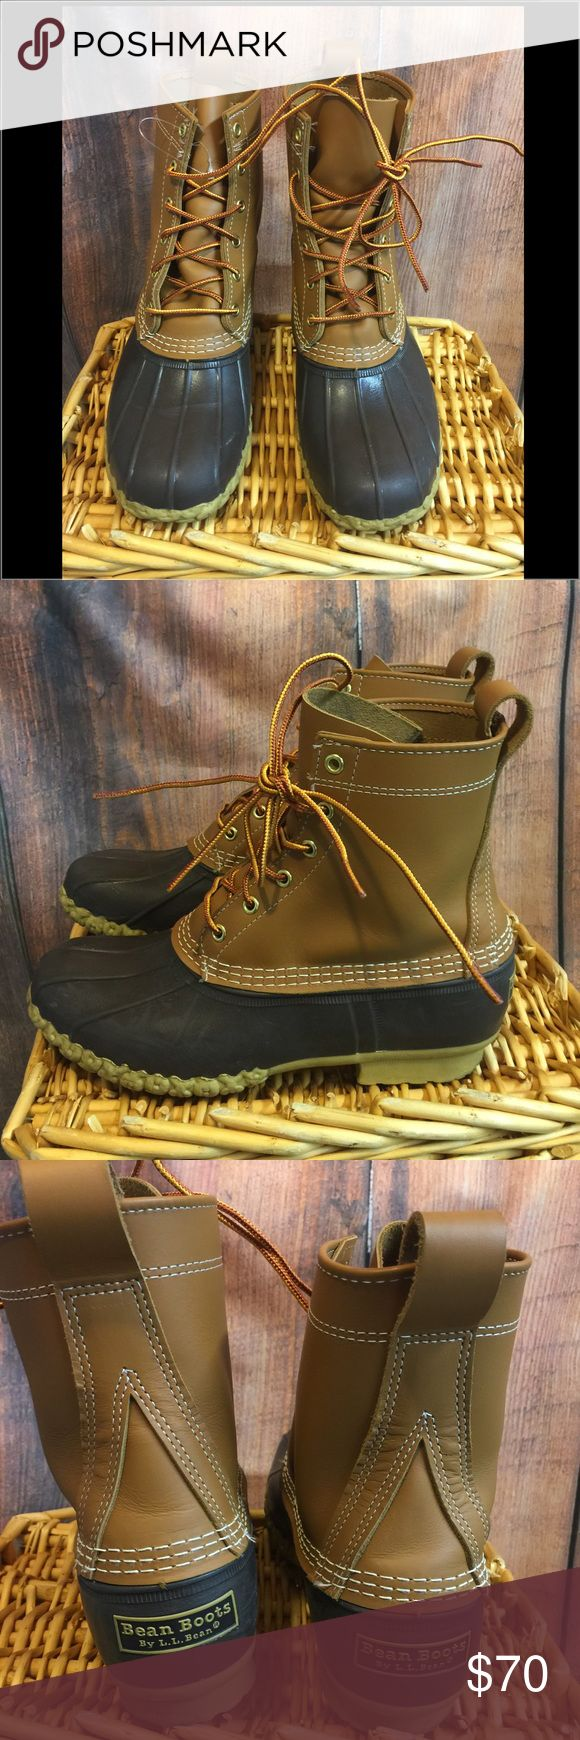 """Women's 8"""" LL Bean Boots 🌺offers welcome🌺 NWOT. 8"""" LL Bean boot.  Cannot be returned. Premium full-grain leather. Supportive steel shank and rubber chain-tread bottom provide comfort and traction. Thinsulate™ Insulation olefin/polyester in rubber bottom for extra warmth during cold snaps.  Smoke free home.  Next day shipping. Please feel free to answer any questions. Thank you for shopping my closet. Offers always welcome❤️ LL Bean Shoes Winter & Rain Boots"""